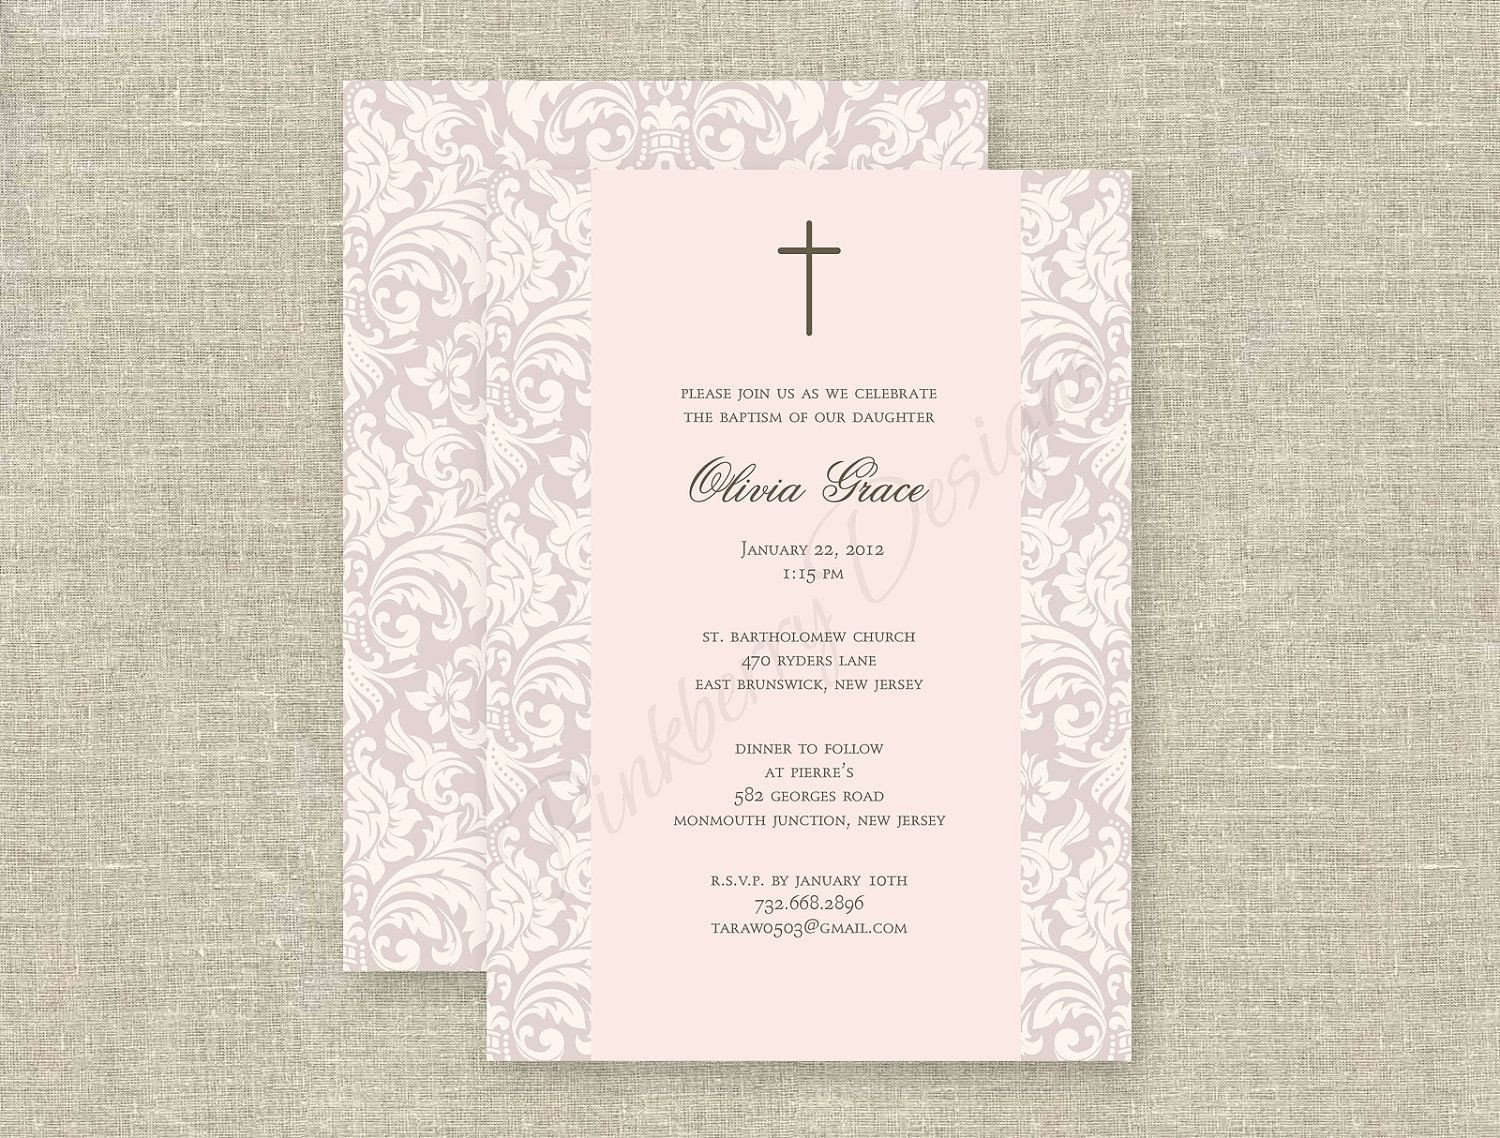 Free Printable Baptism Invitations Baptism Invitations In Spanish Baptism Invitations In